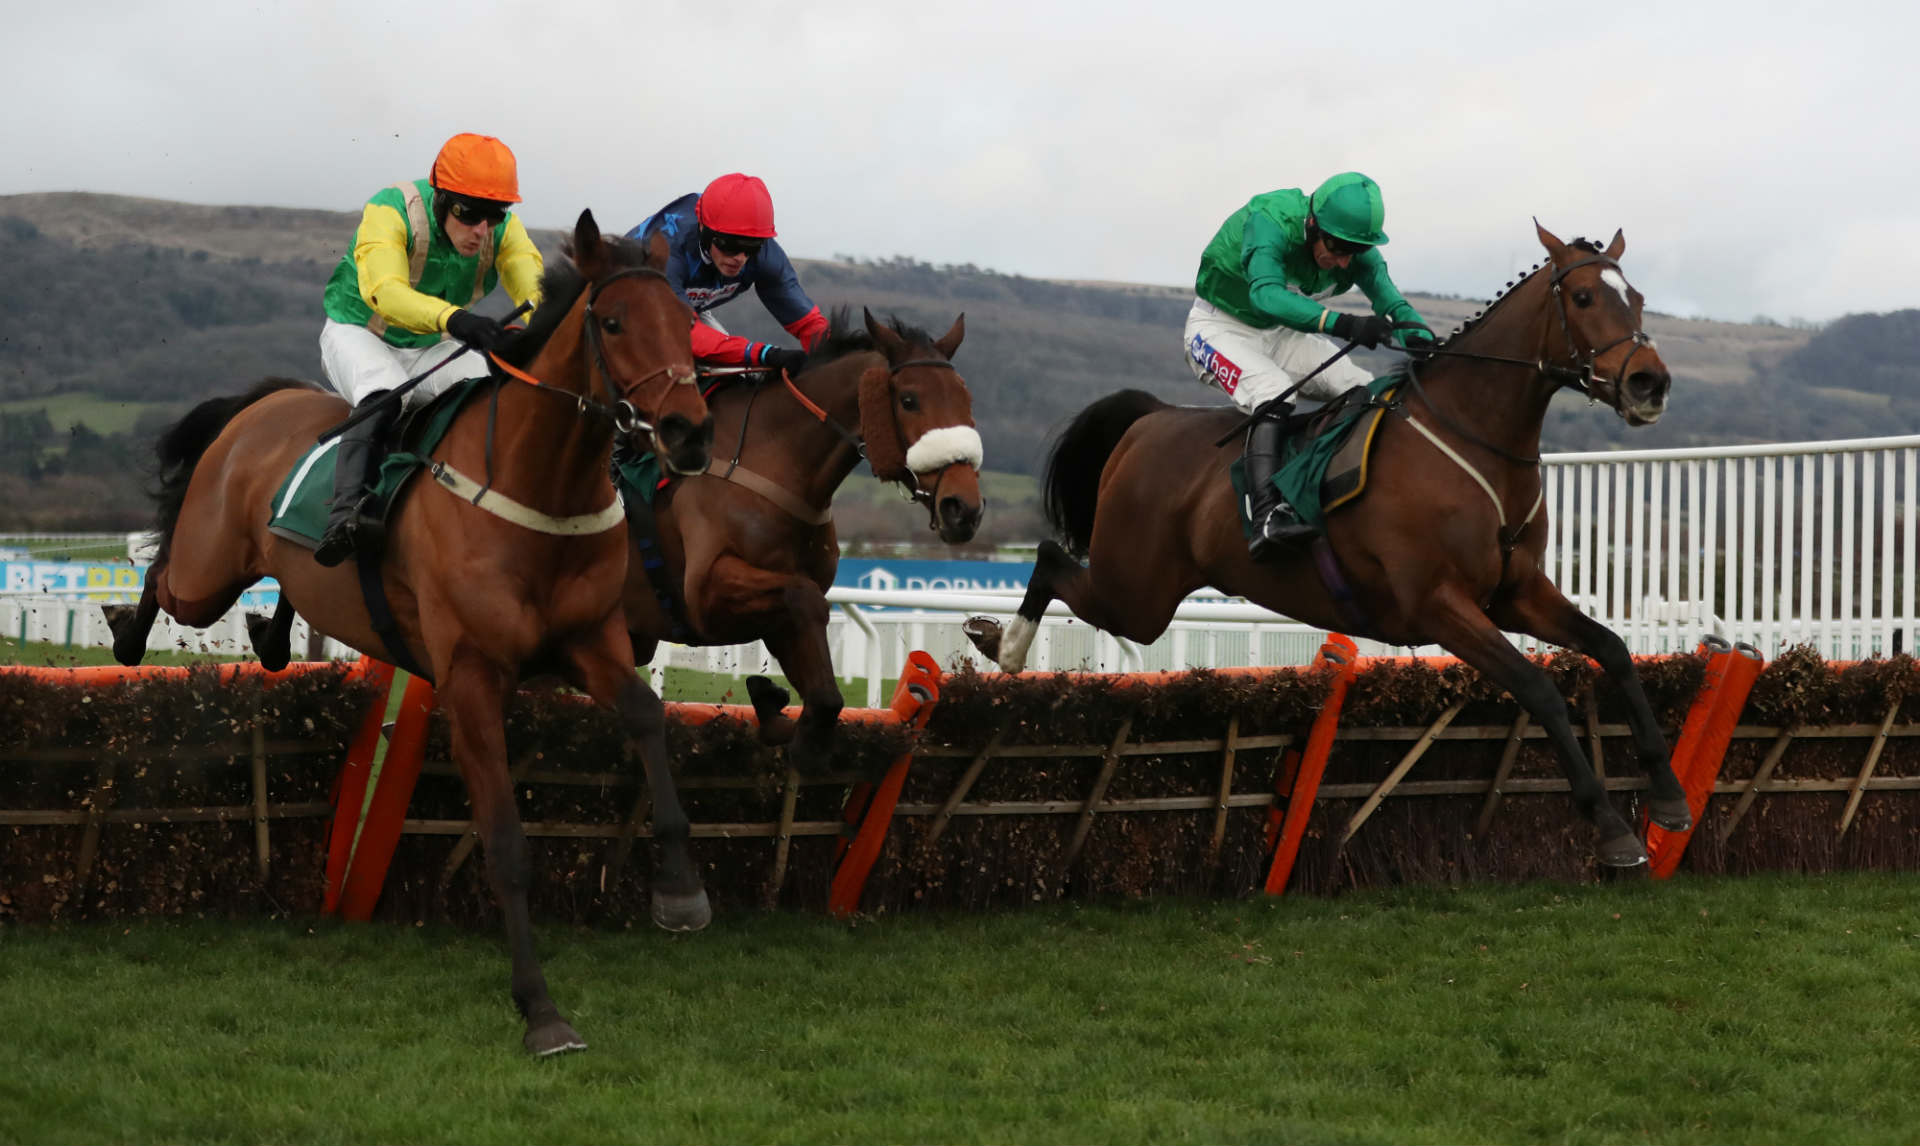 Relkeel hurdle betting calculator live scores 7m sports betting